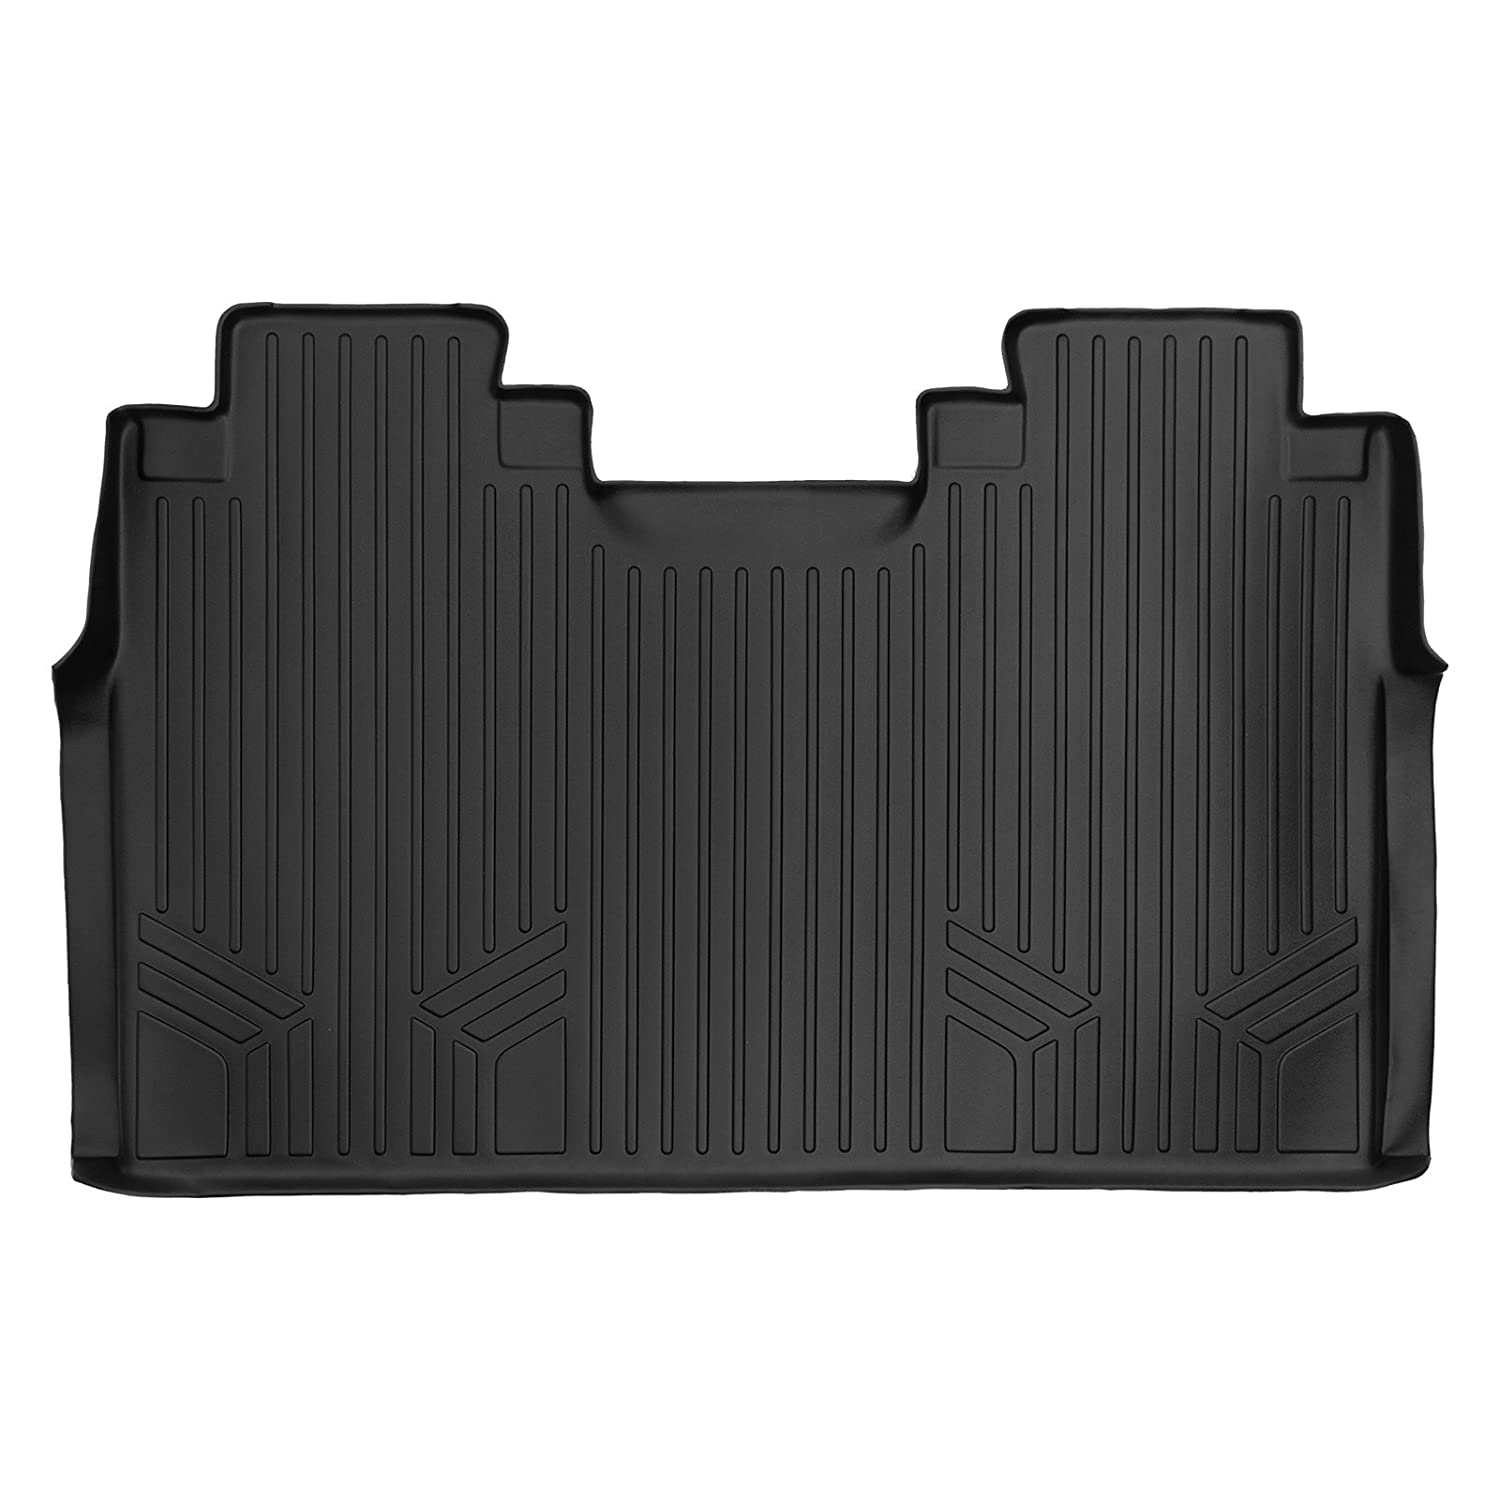 MAXLINER B0188 Floor Mats for Ford F-150 Super Crew with Front Bench Seats, 2015-2017 2nd Row, Black